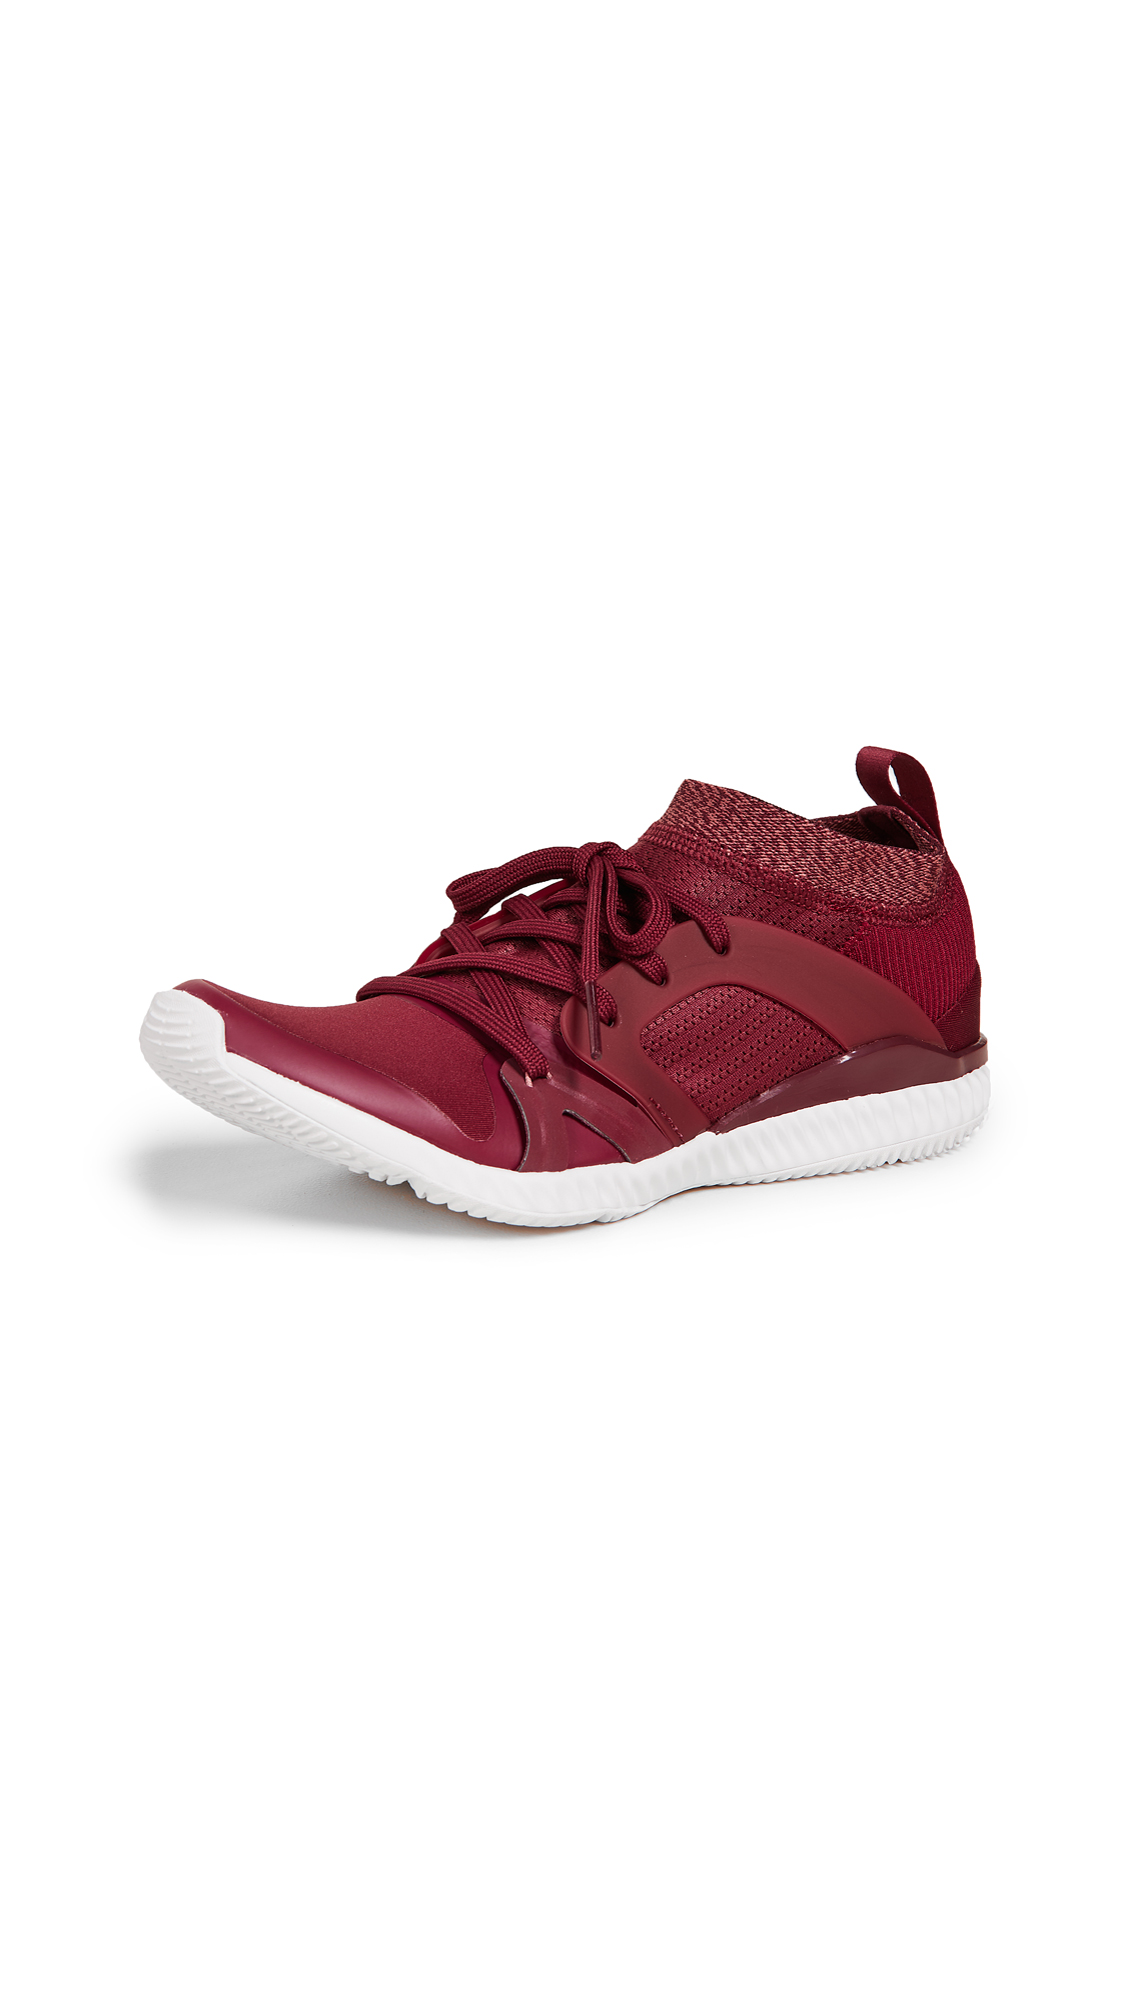 adidas by Stella McCartney CrazyTrain Pro Sneakers - Maroon/Raw Pink/White